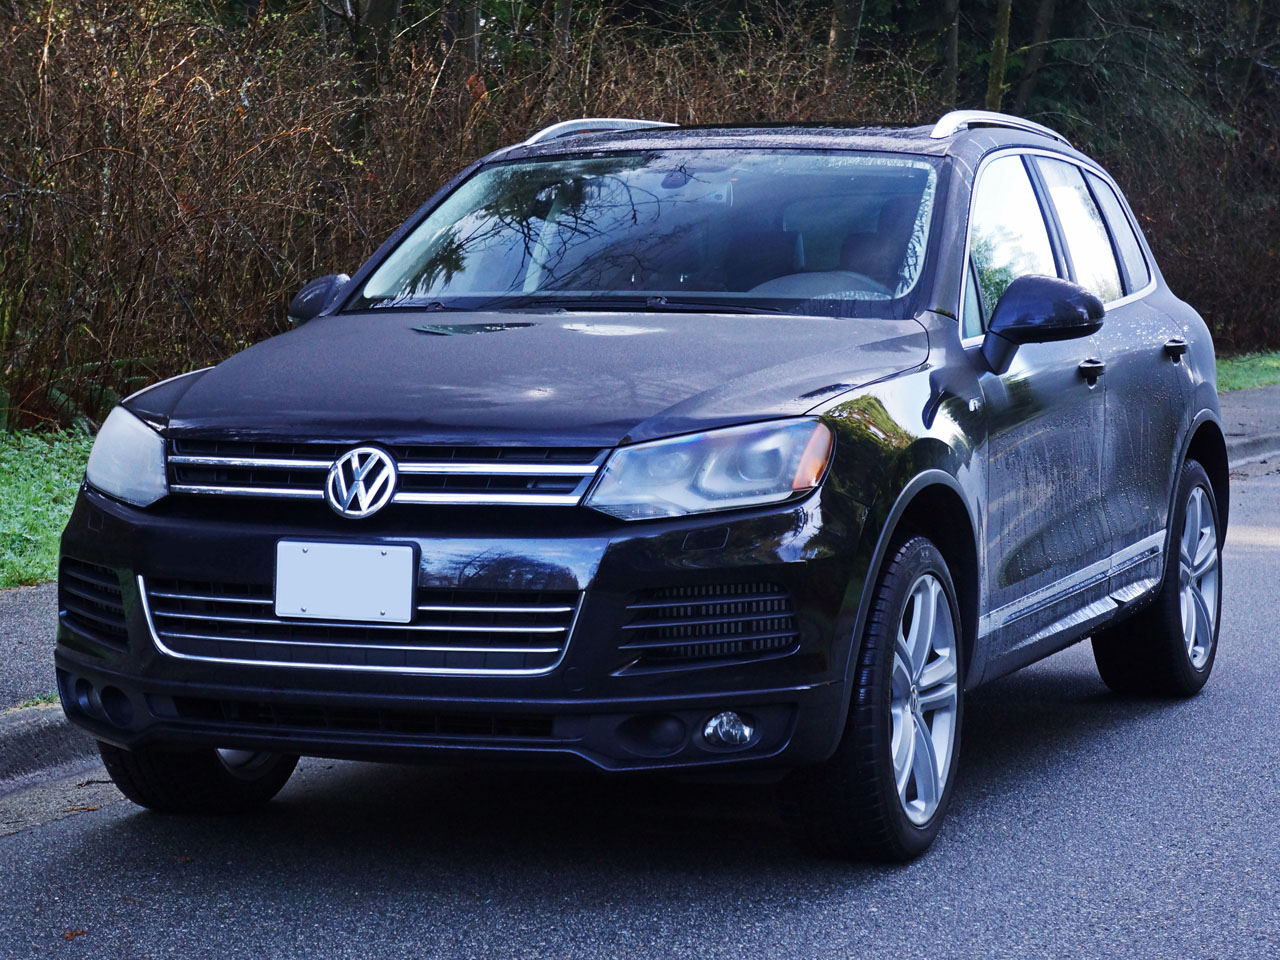 2014 volkswagen touareg execline tdi r line road test review carcostcanada. Black Bedroom Furniture Sets. Home Design Ideas